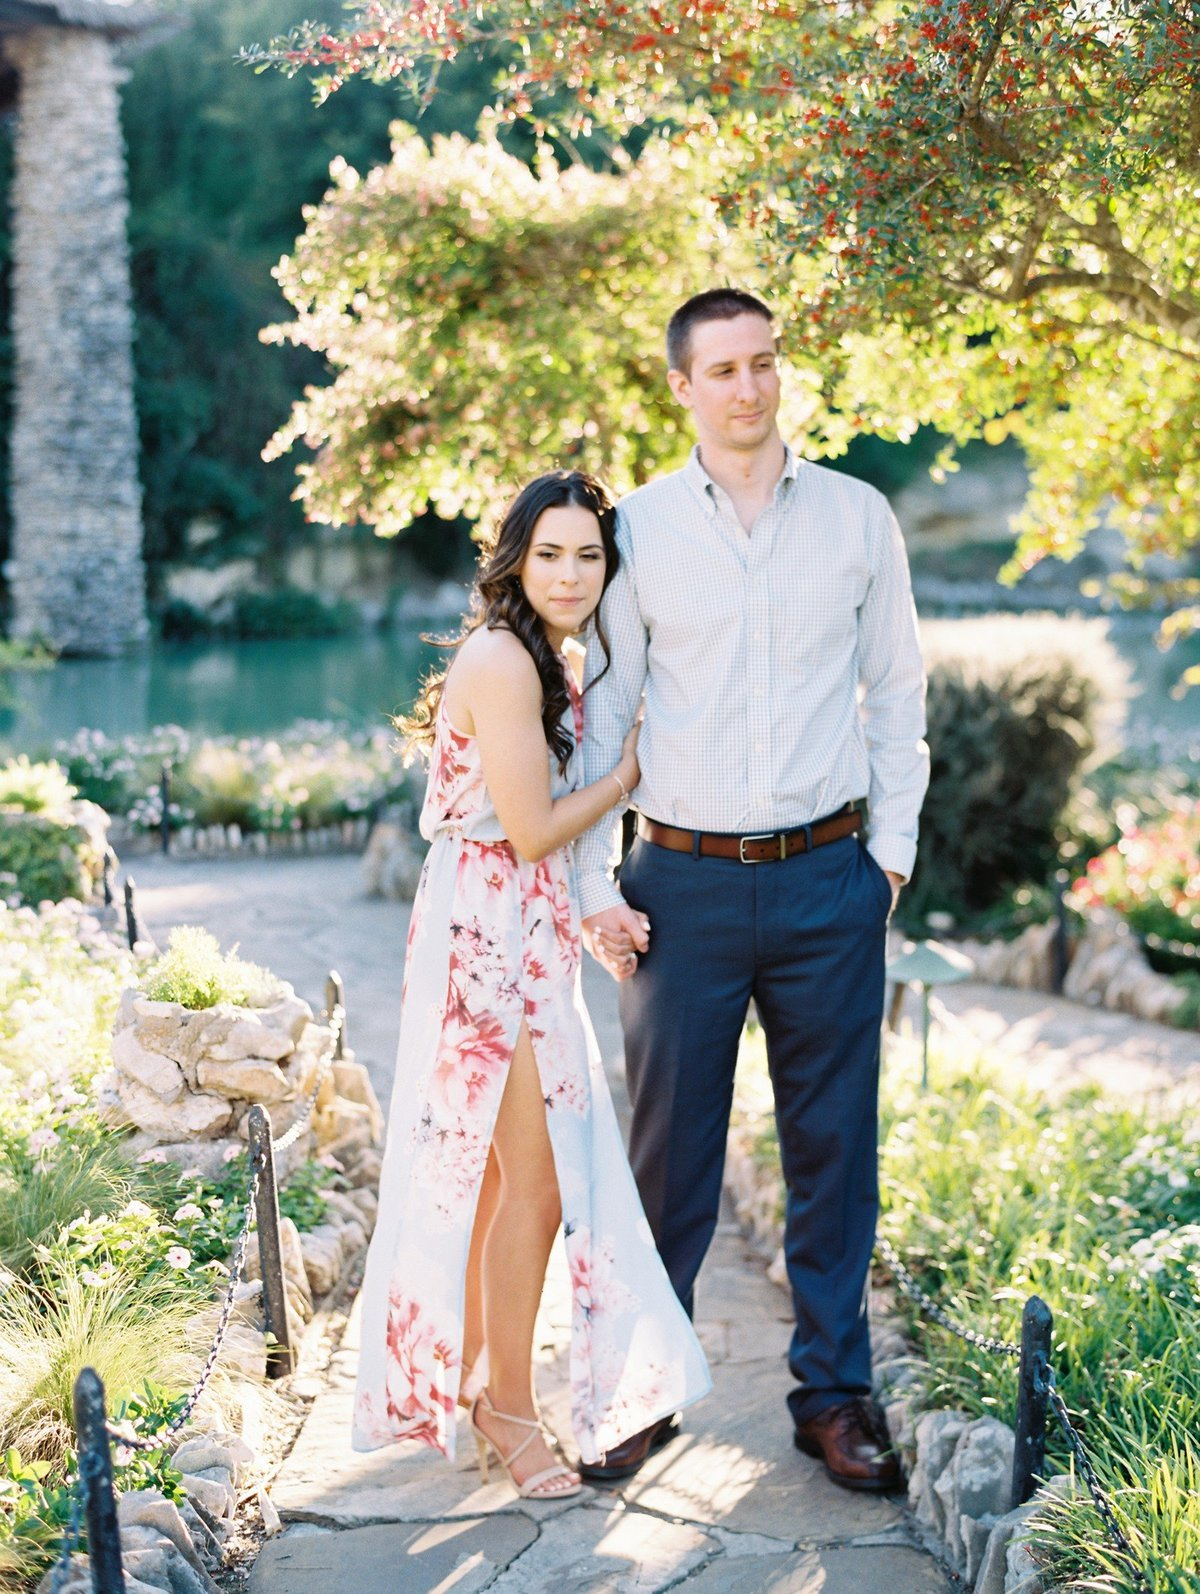 New_Braunfels_Texas_Film_Portrait_Wedding_Photographer_Photography_0024